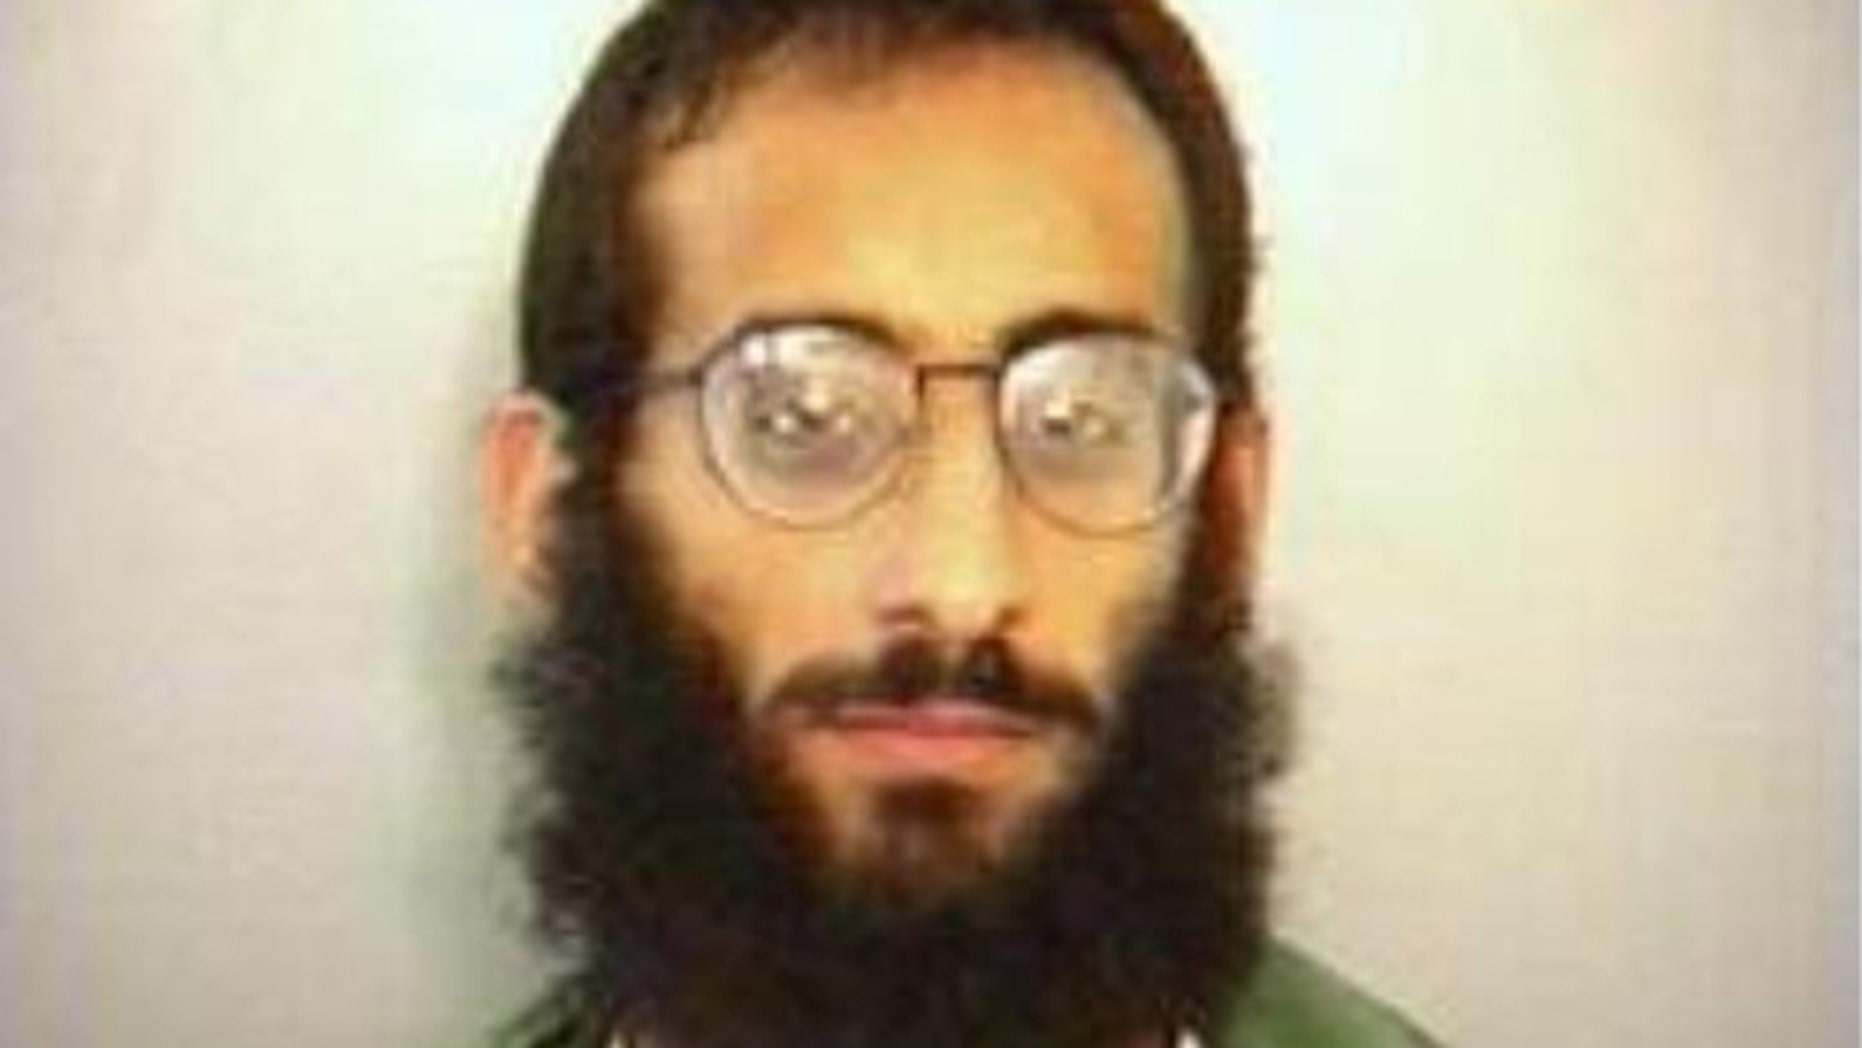 April 1997: Anwar al-Awlaki's booking photo for soliciting a prostitute.